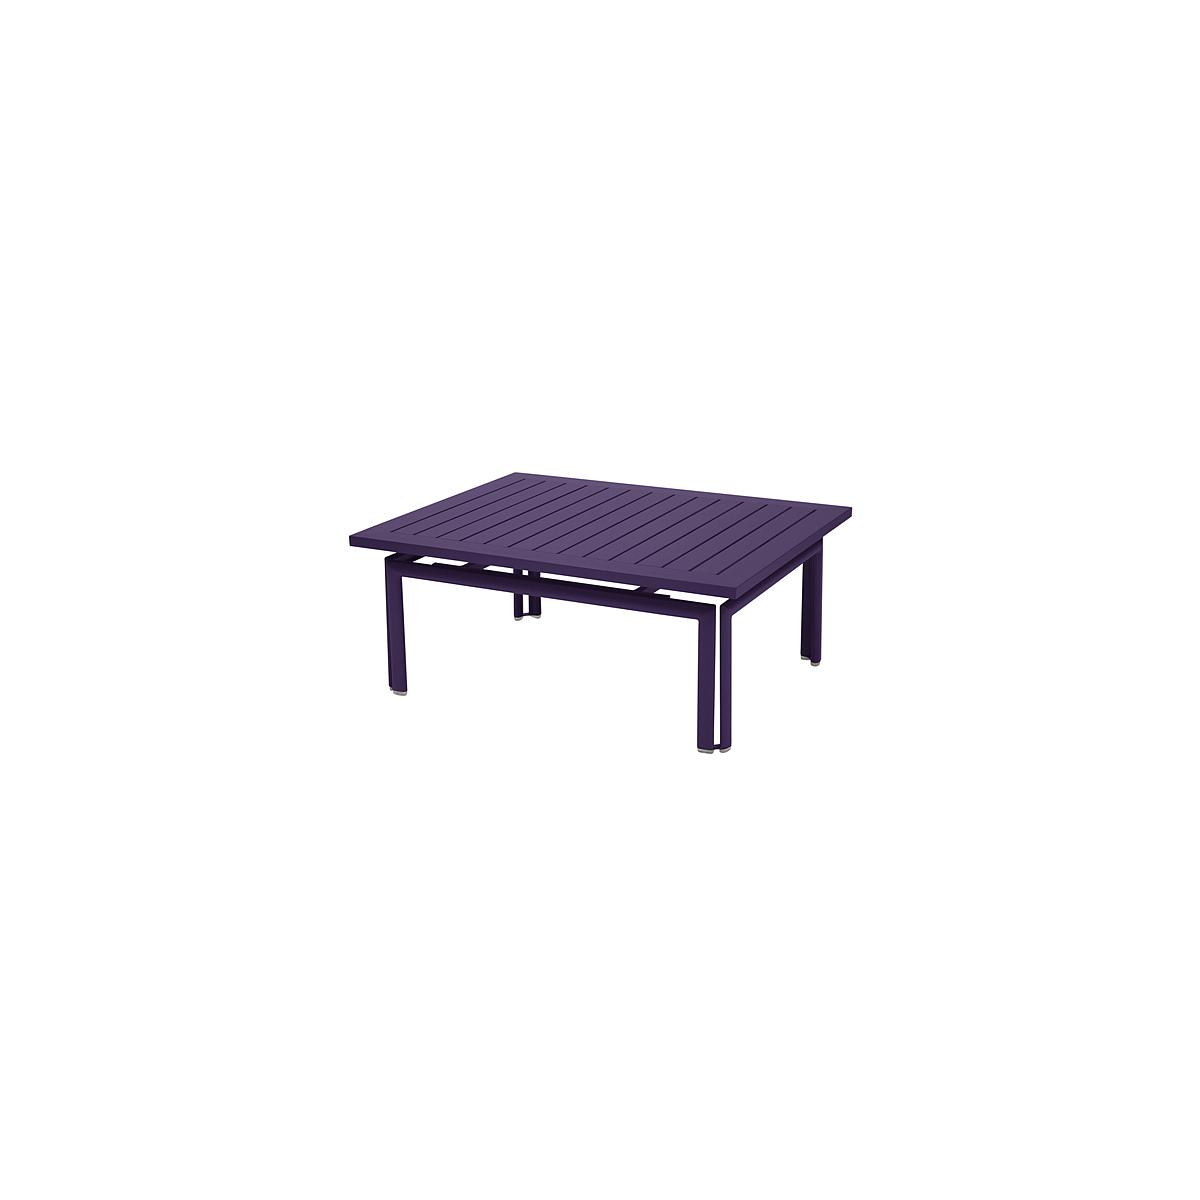 COSTA by Fermob Table basse Violet aubergine